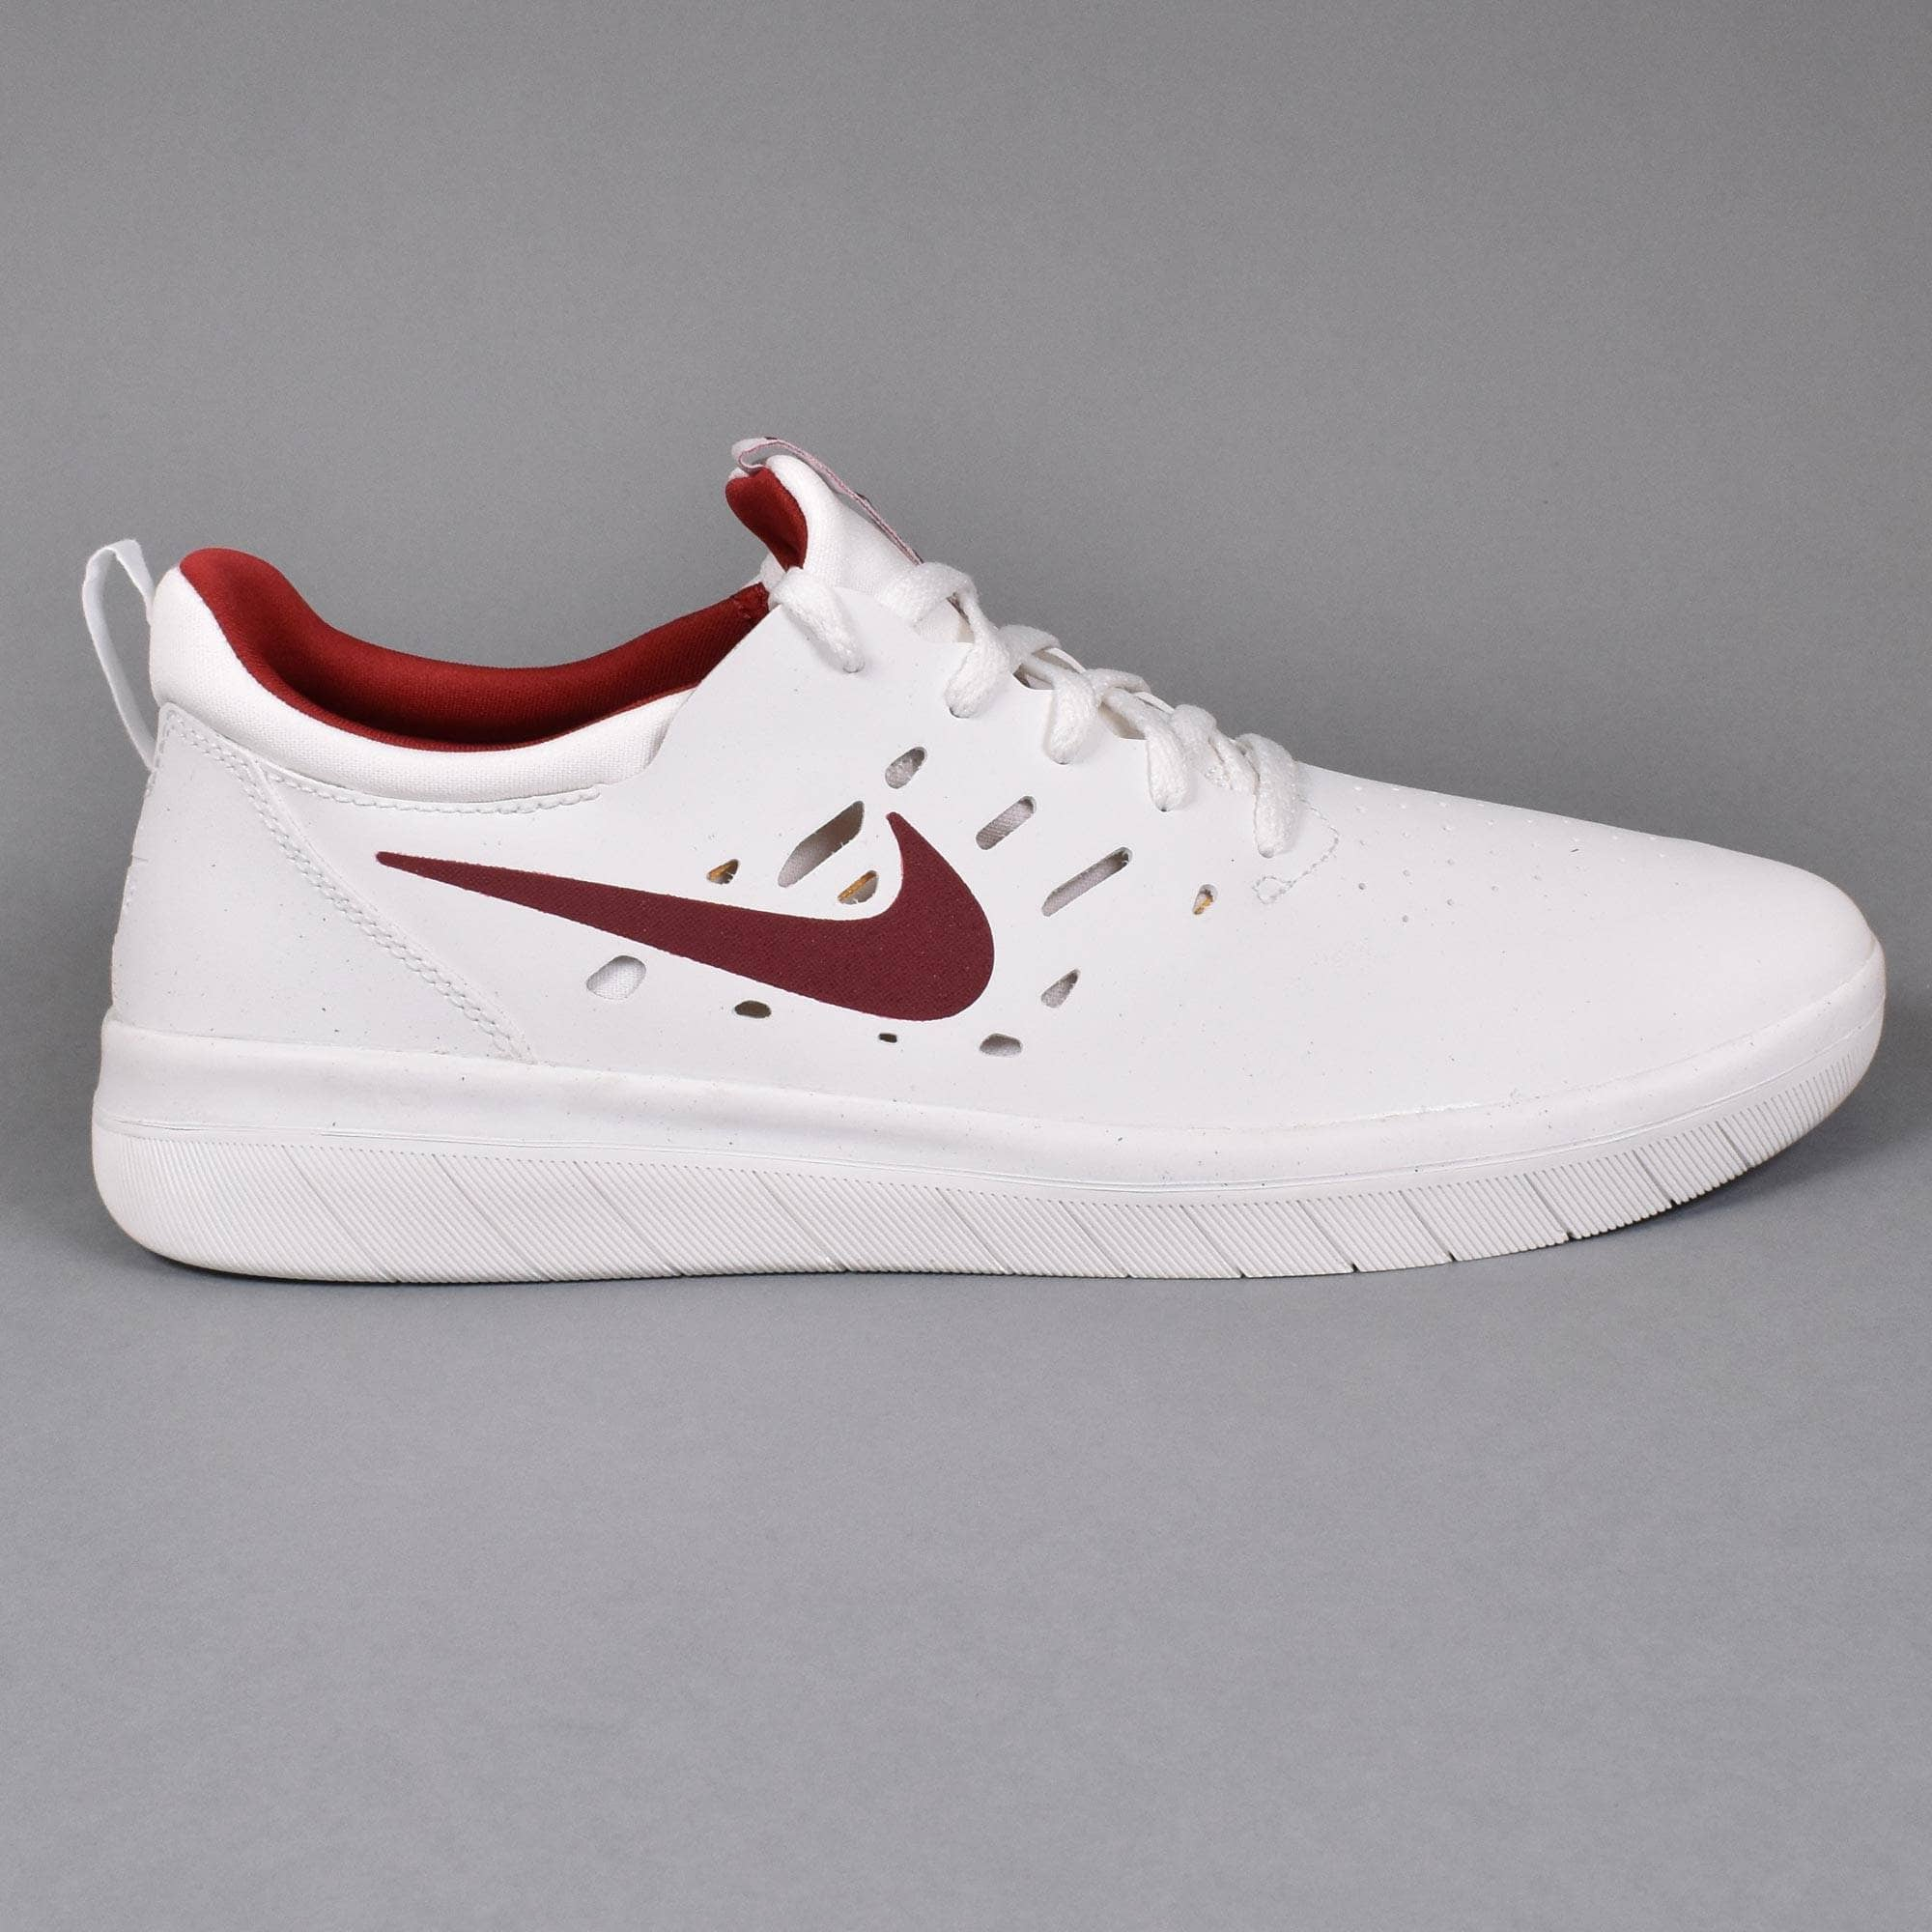 nyjah huston shoes red